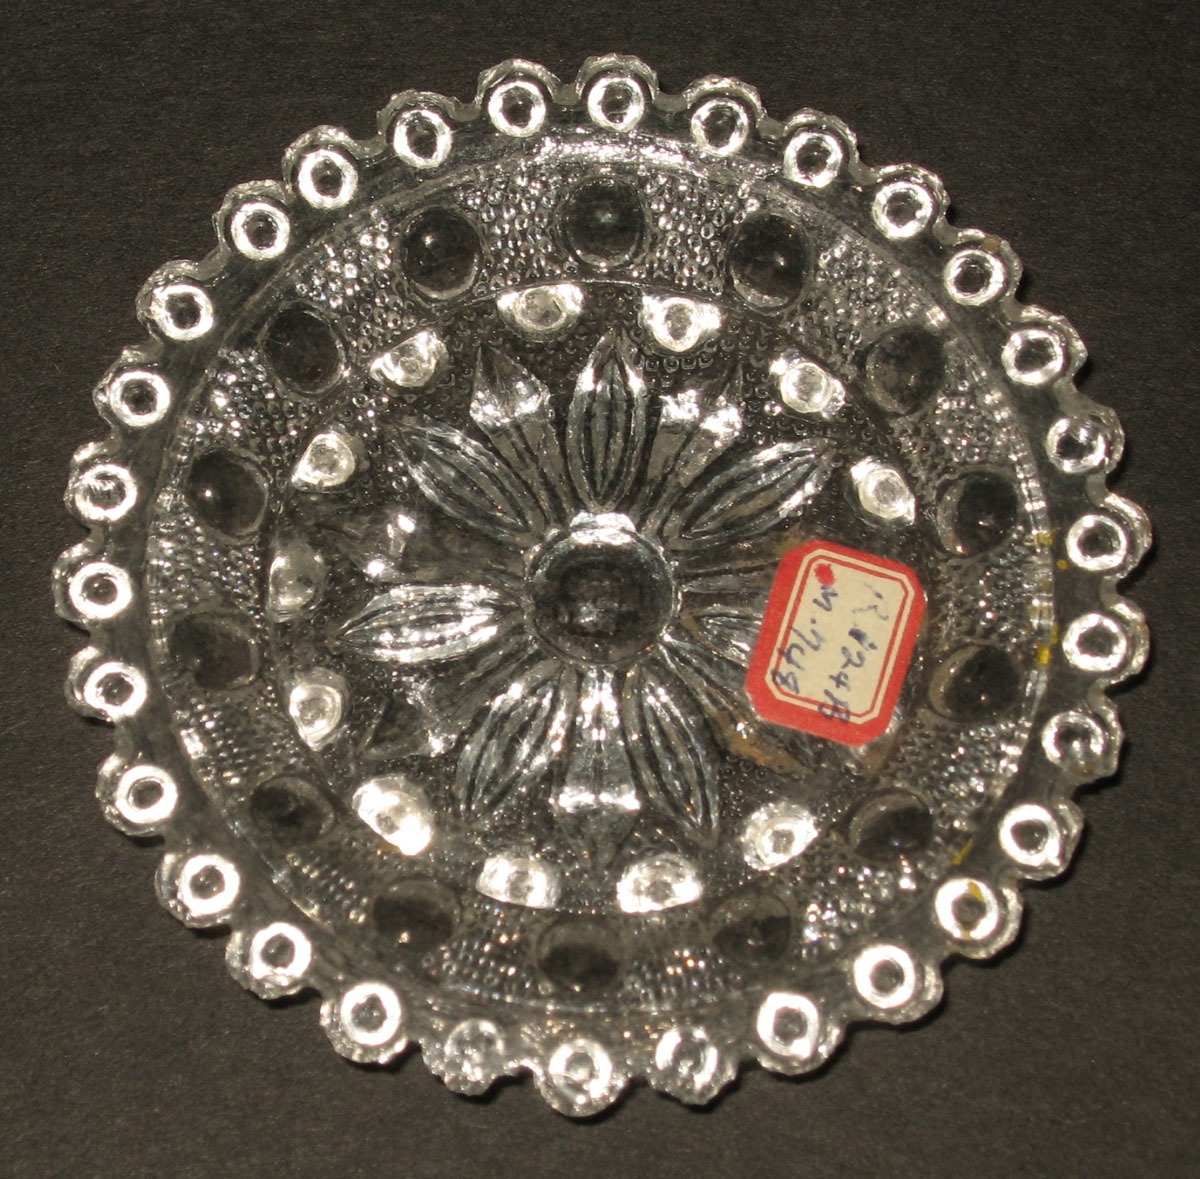 1978.0125.014 Glass cup plate